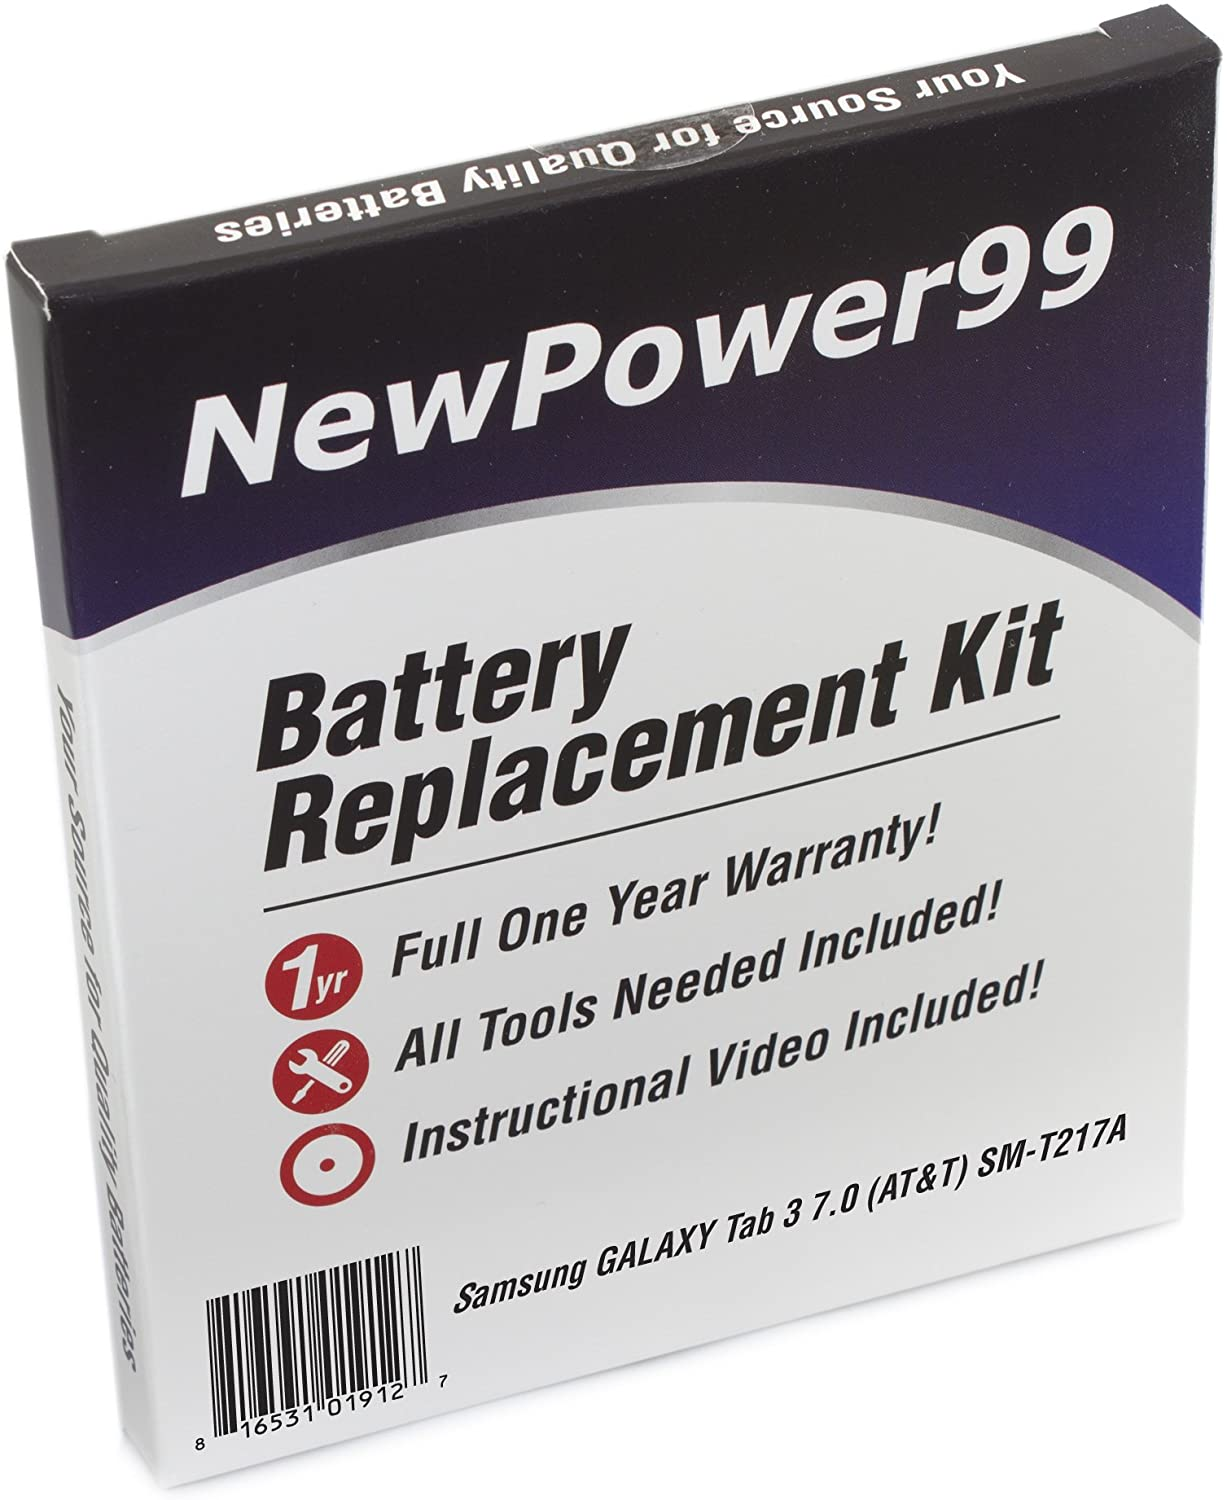 NewPower99 Battery Replacement Kit with Battery, Instructions and Tools for Samsung Galaxy Tab 3 7.0 SM-T217A (AT&T)